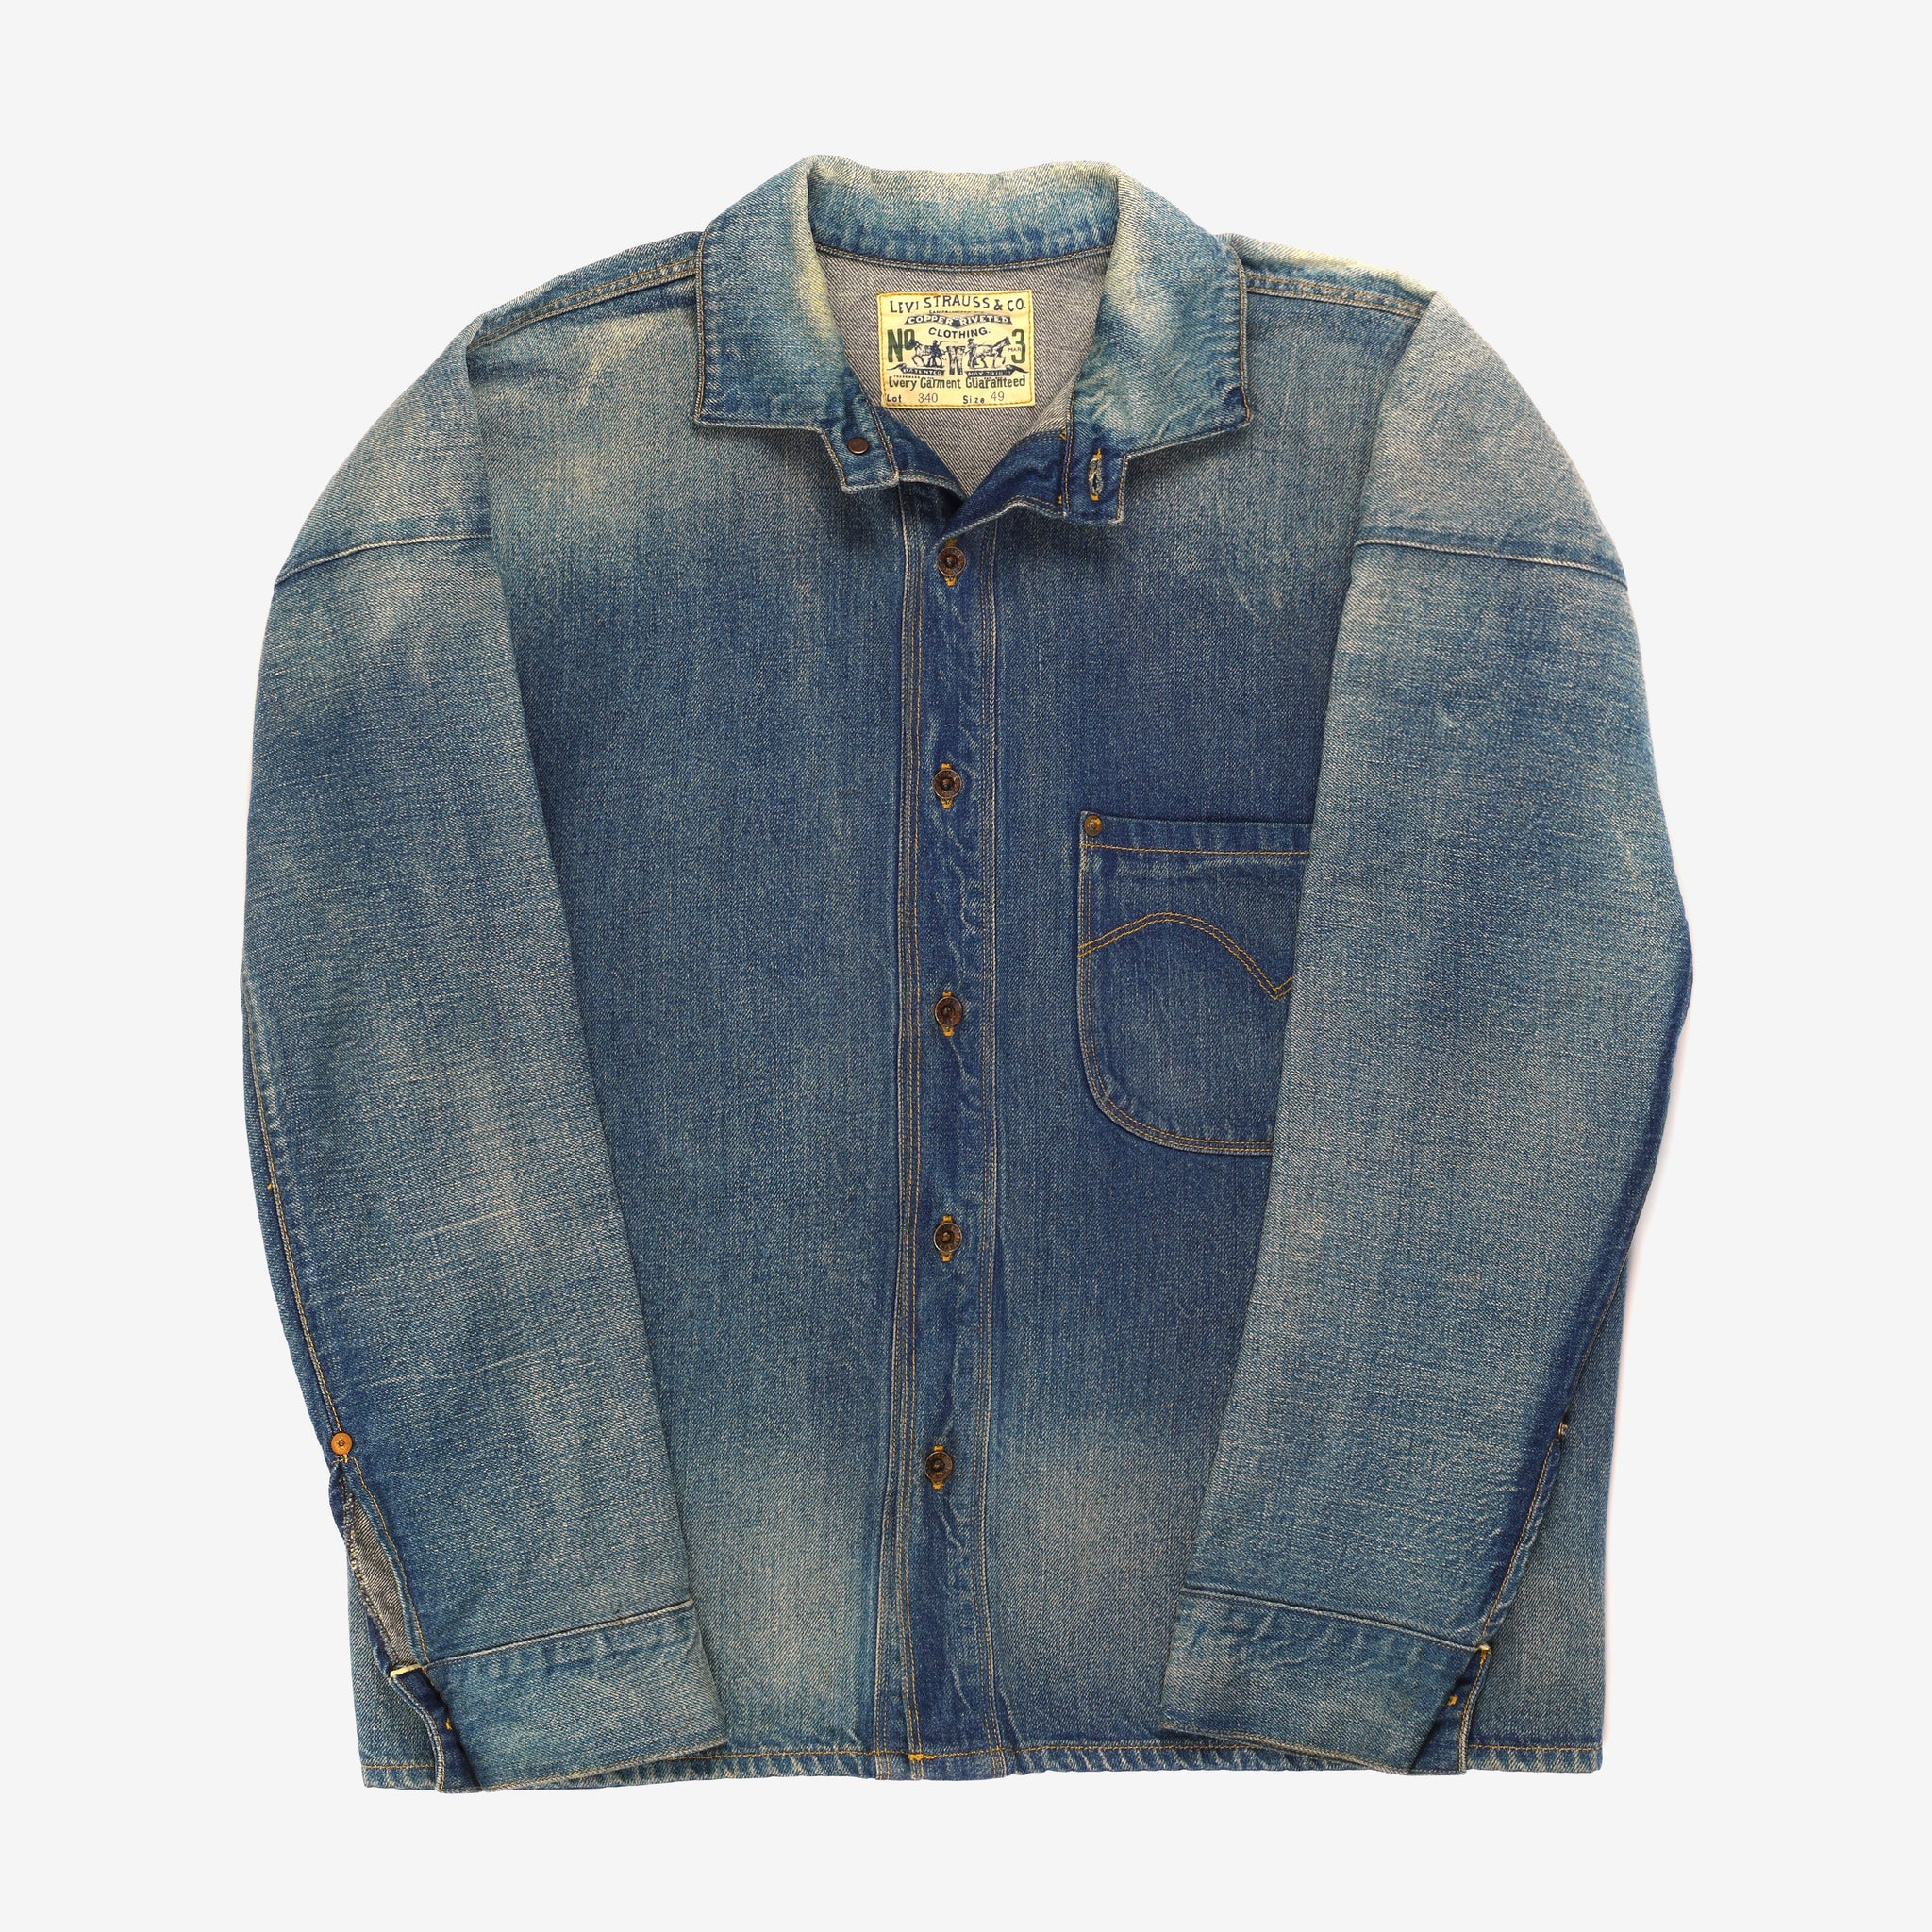 Lot 340 Oversized Denim Shirt